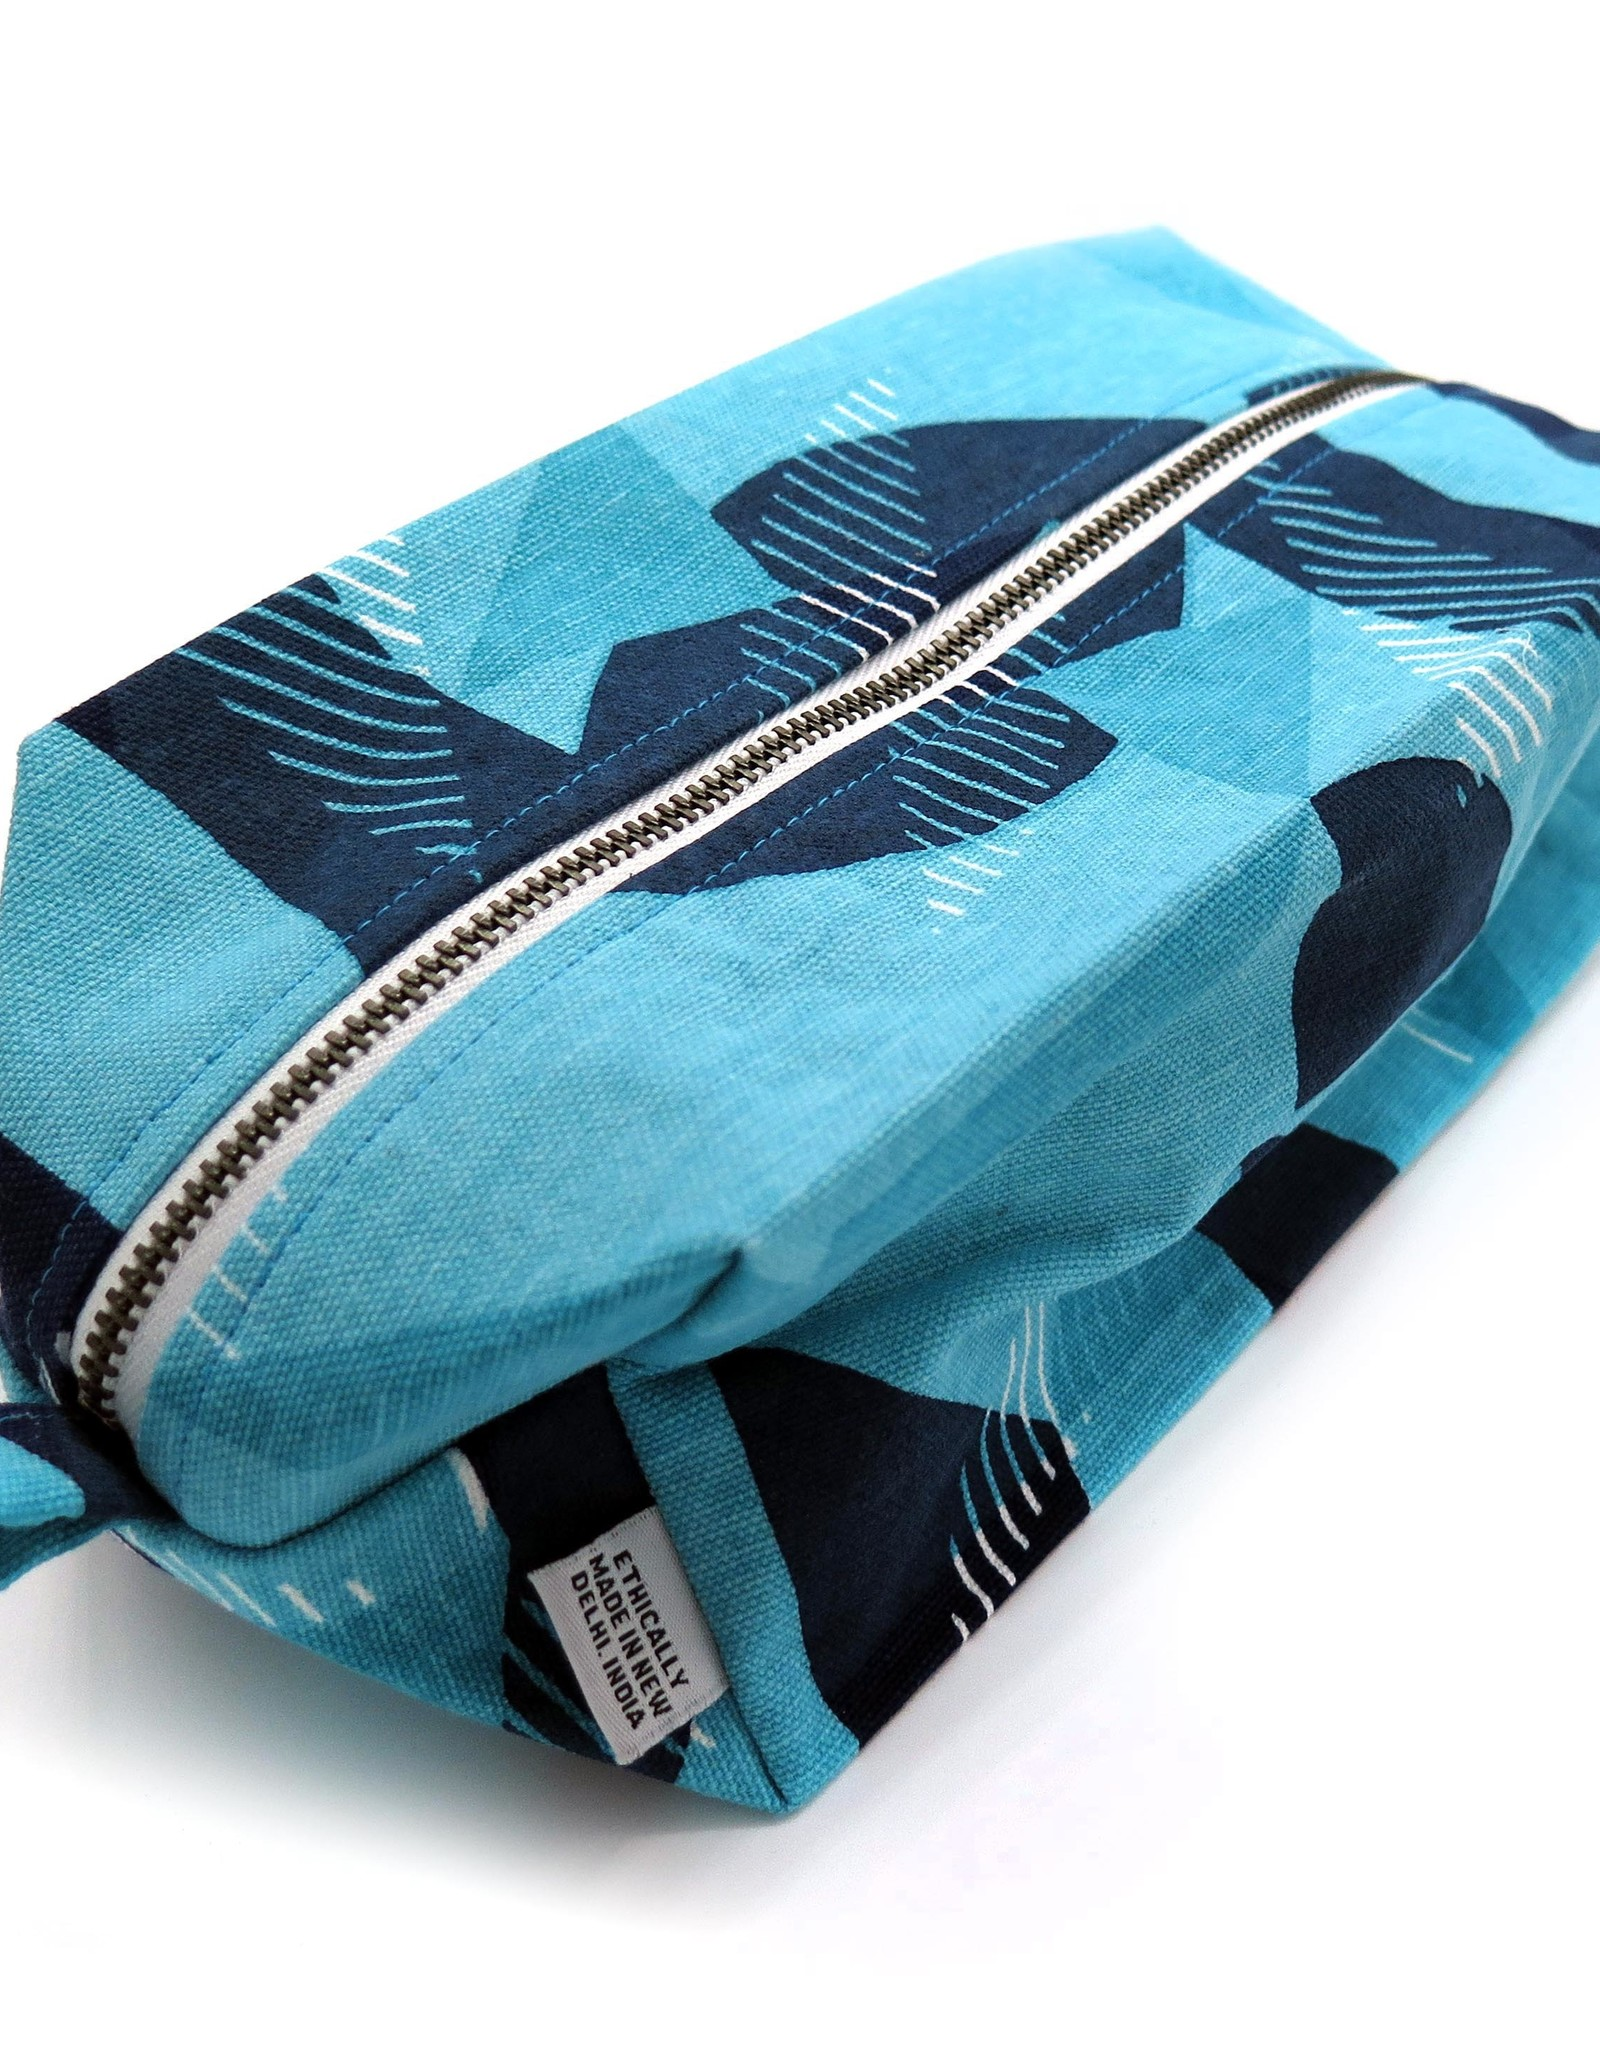 Jigsaw (Blue) Dopp Kit by PINTL + KEYT